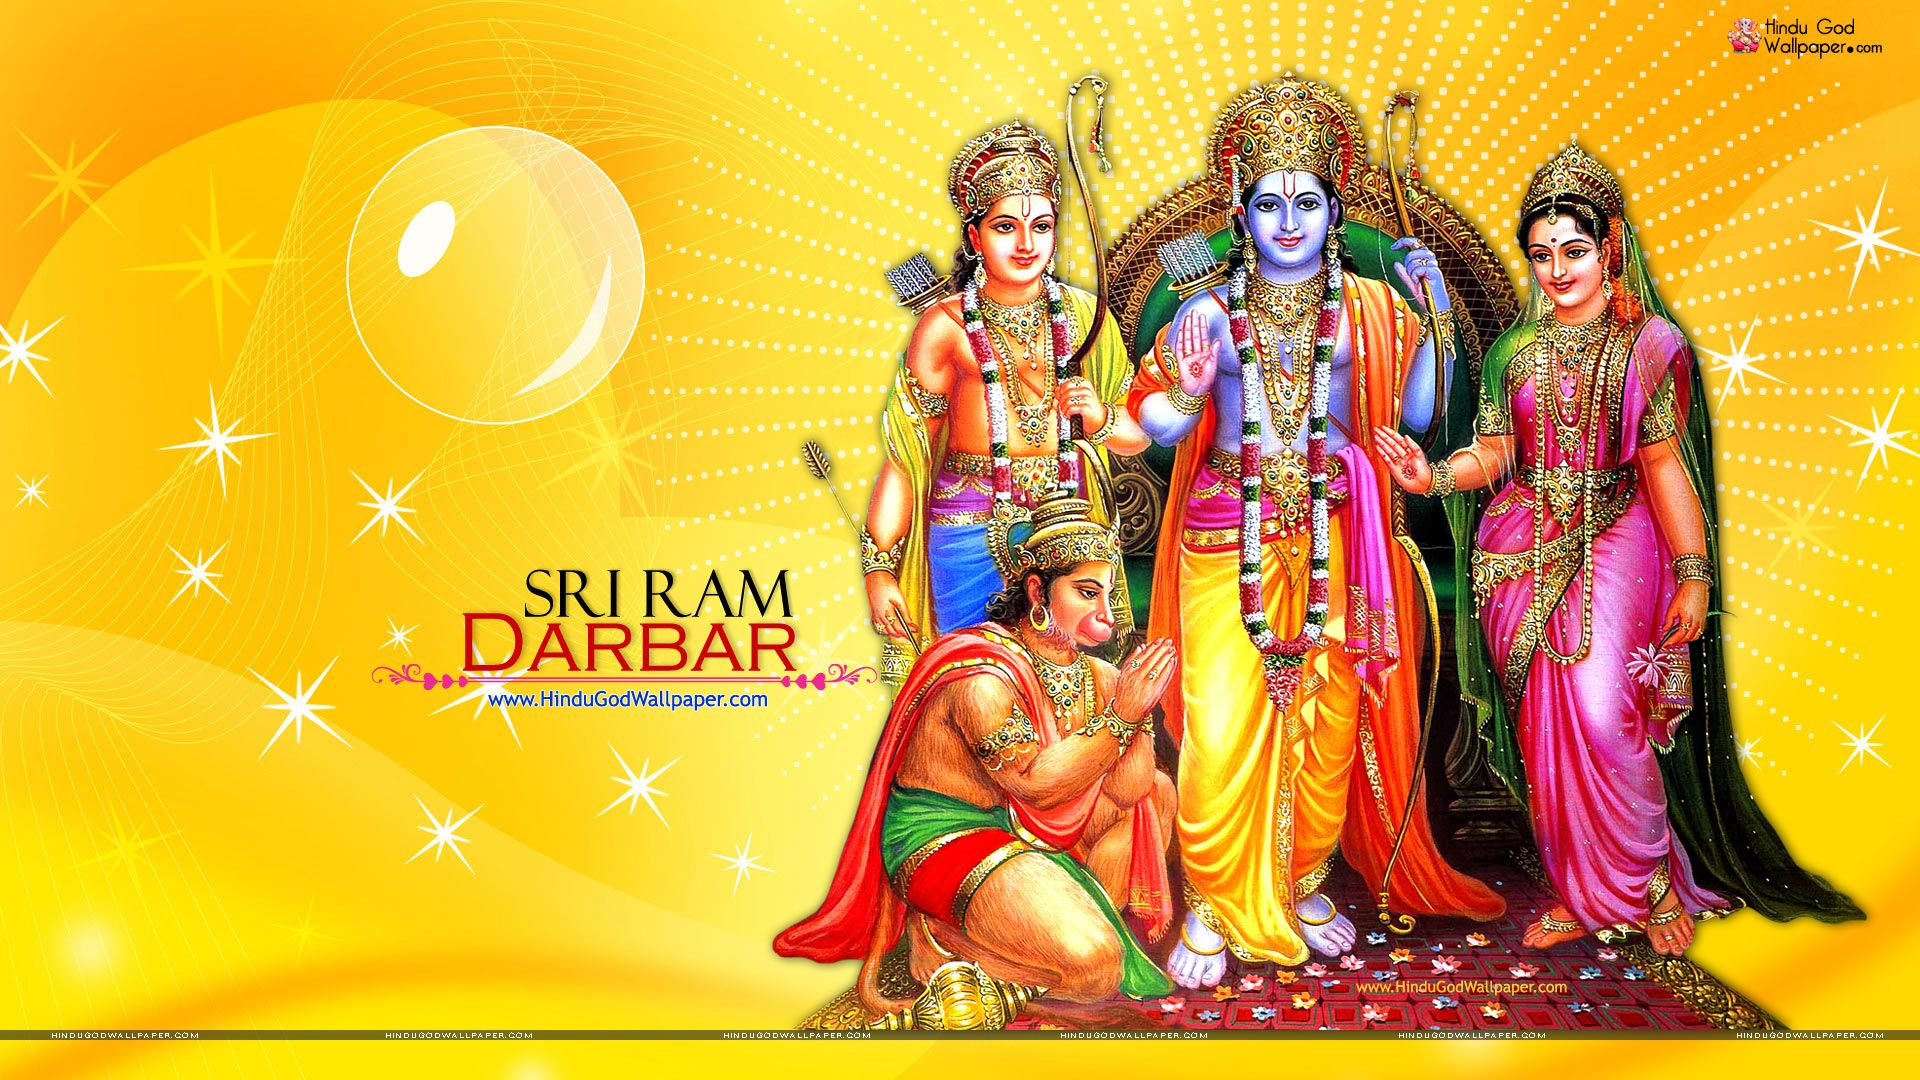 Lord Rama HD wallpaper for download in laptop and desktop